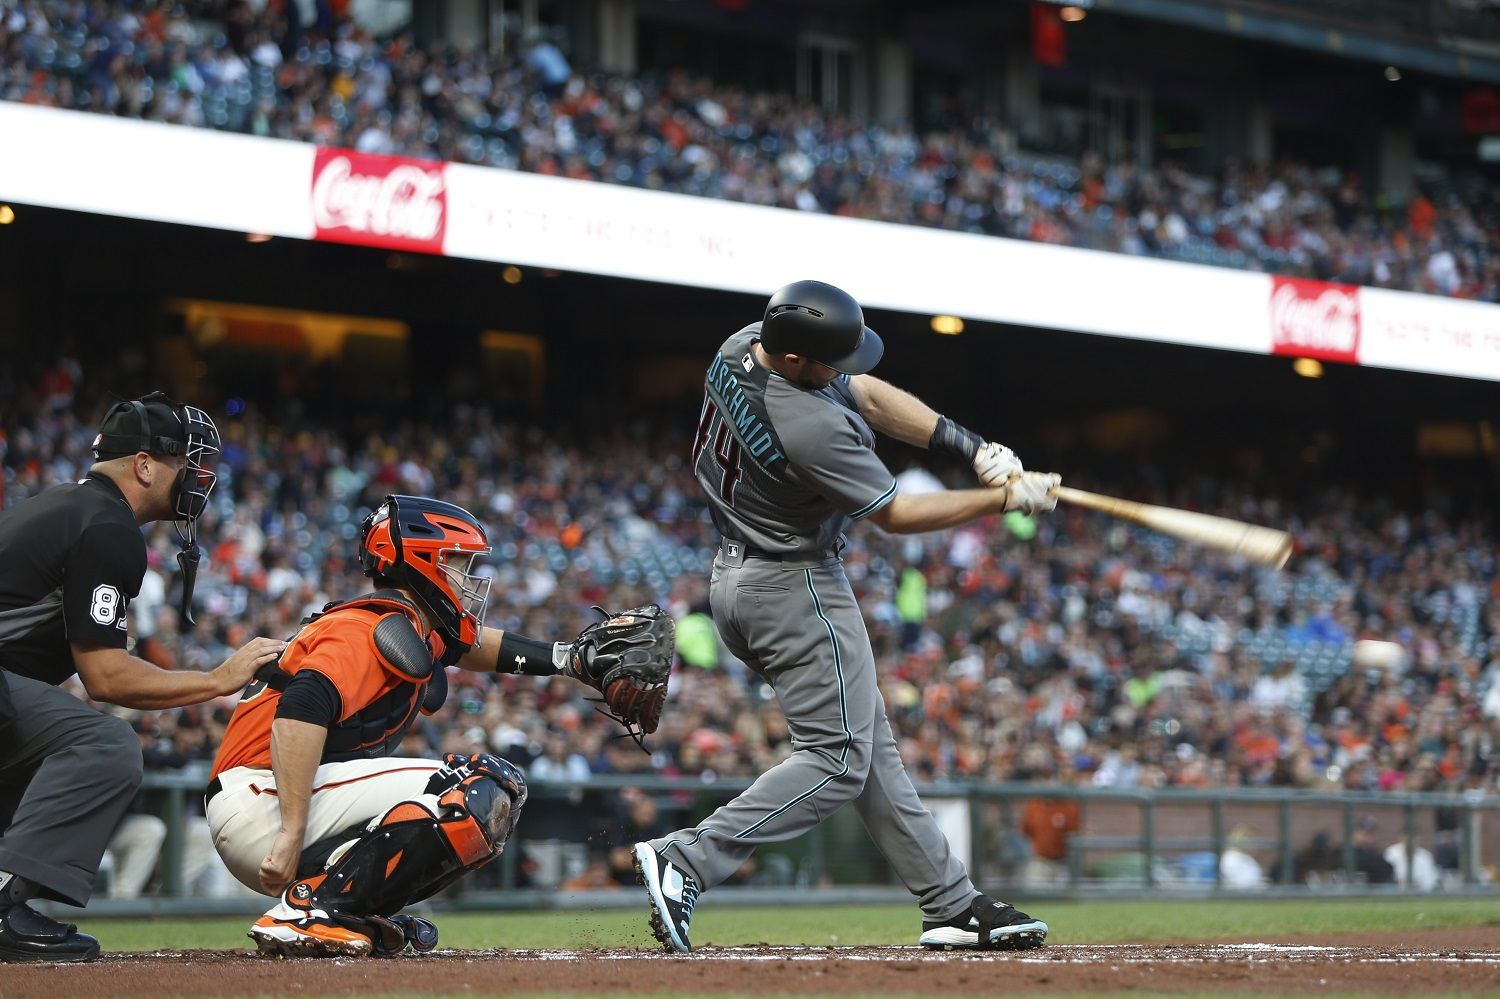 SAN FRANCISCO, CA - AUGUST 4: Paul Goldschmidt #44 of the Arizona Diamondbacks sonnets for a single during the second inning against the San Francisco Giants at AT&T Park on August 4, 2017 in San Francisco, California. (Photo by Stephen Lam/Getty Images)